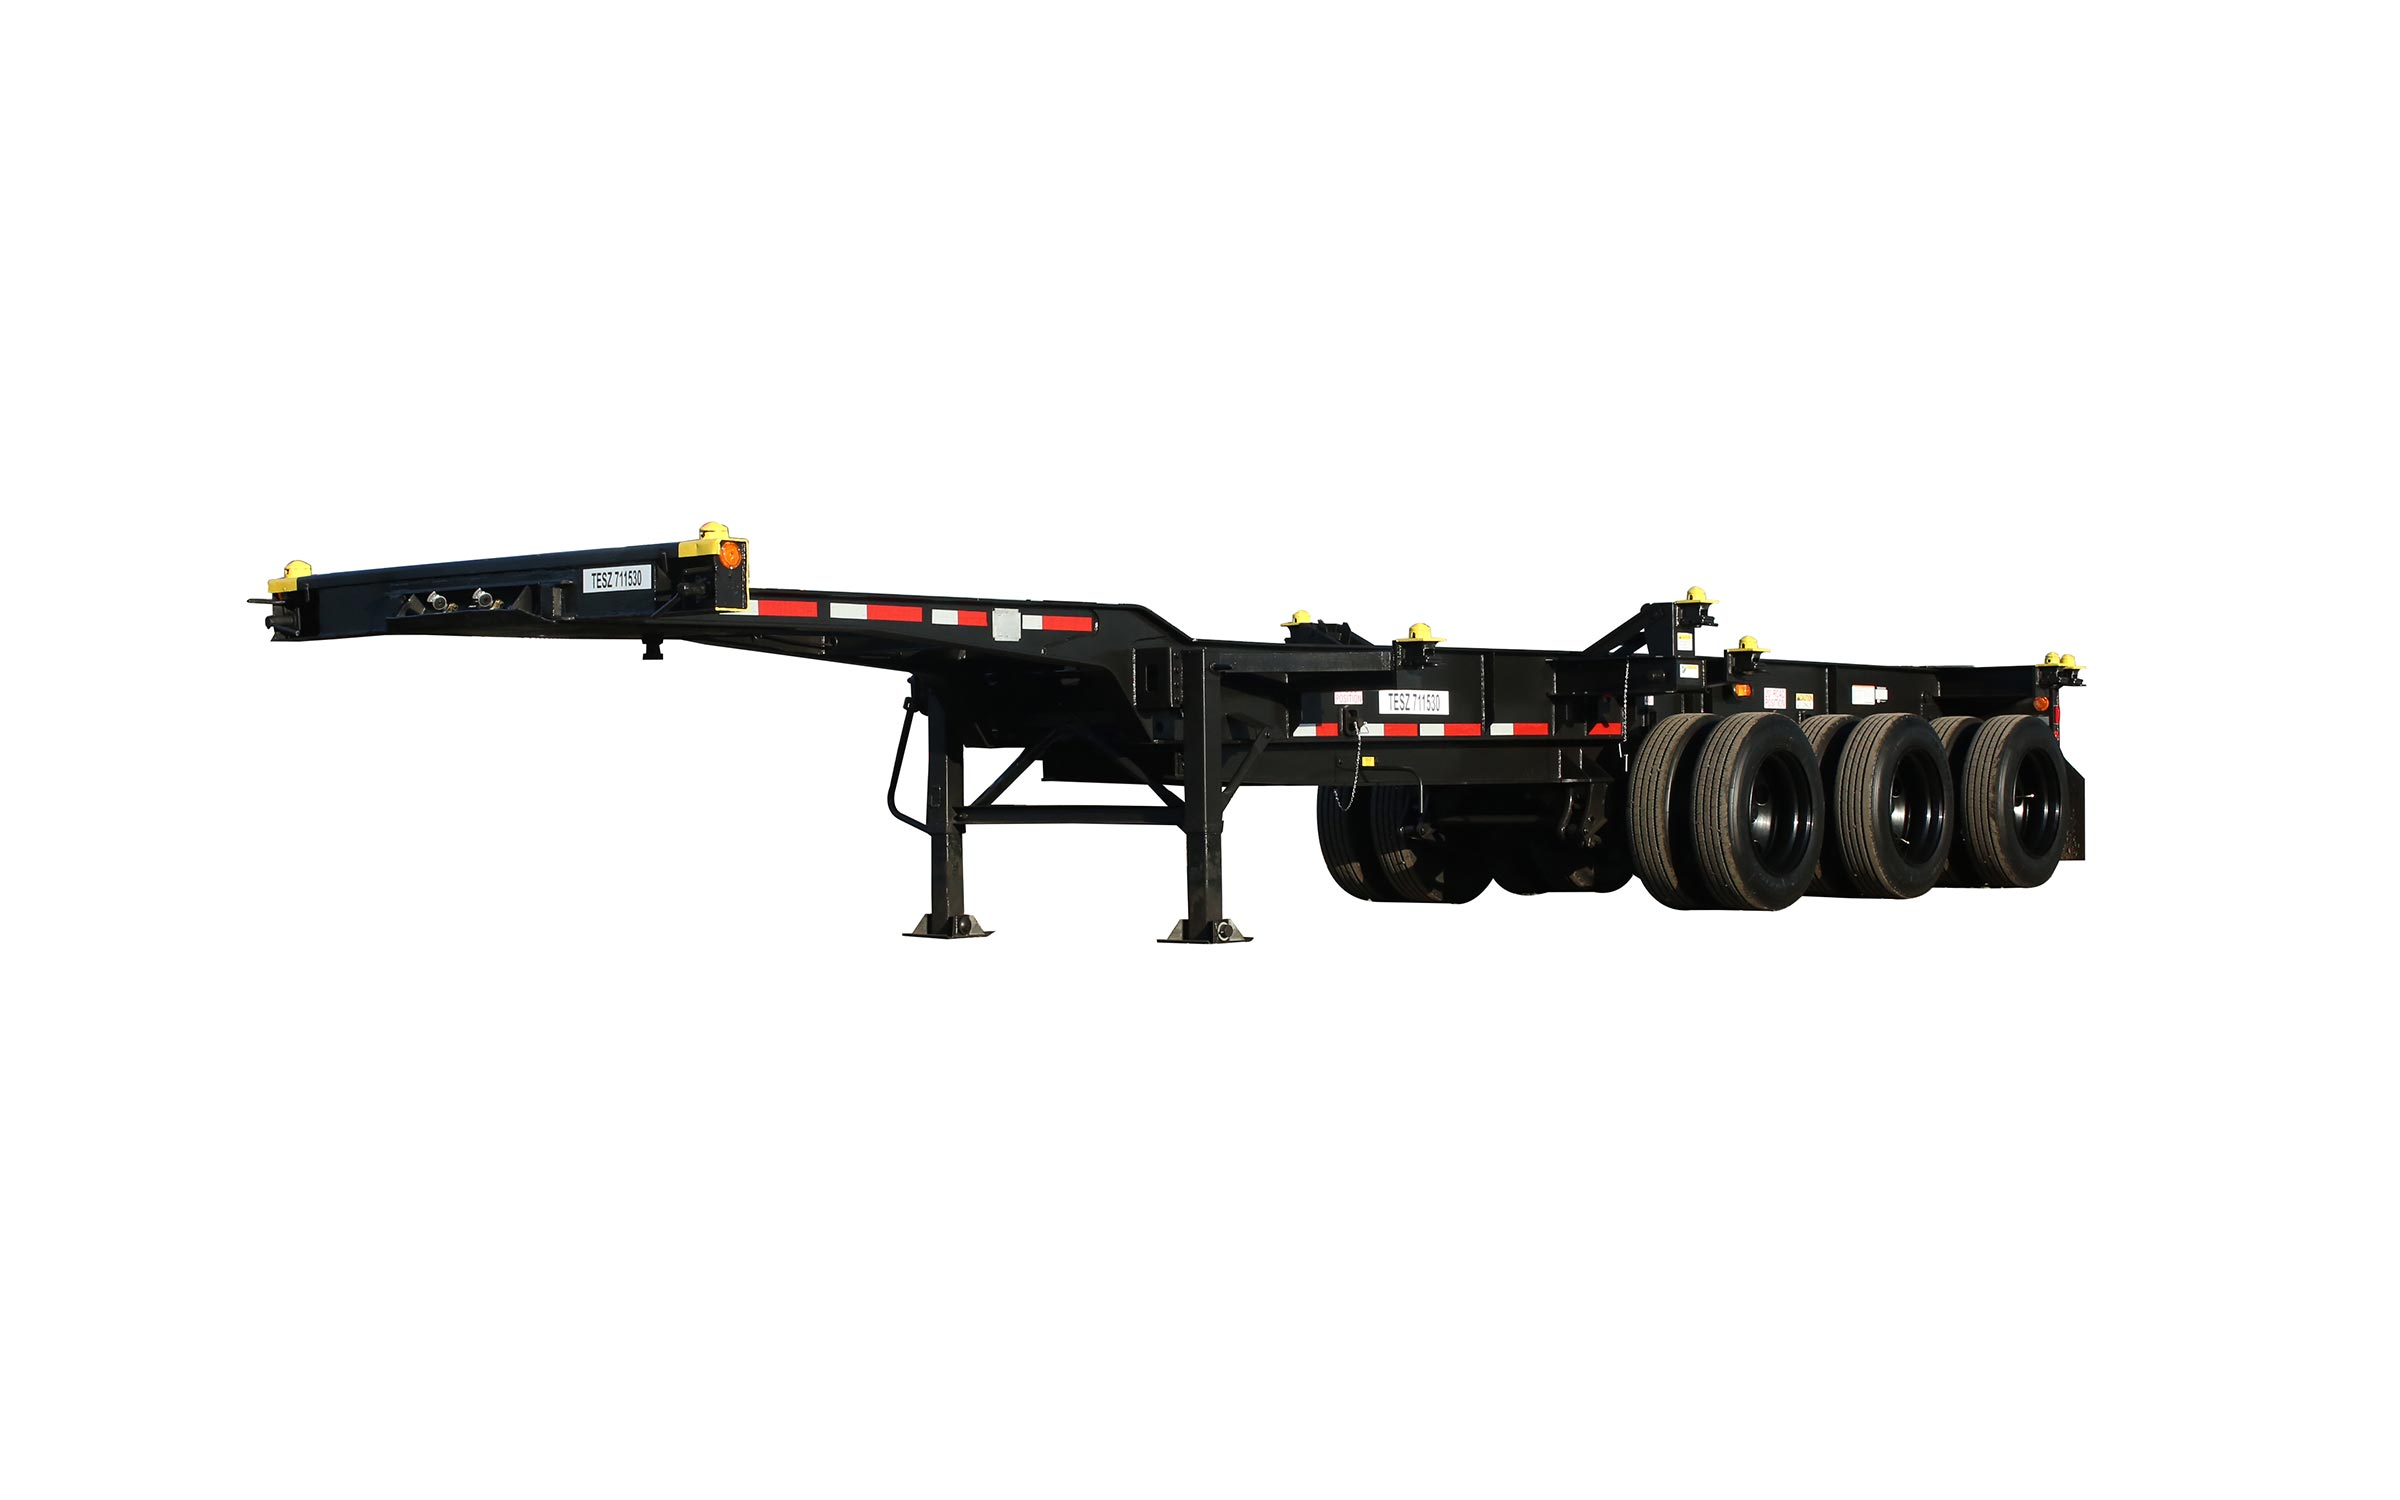 anysizer tri-axle chassis from the front